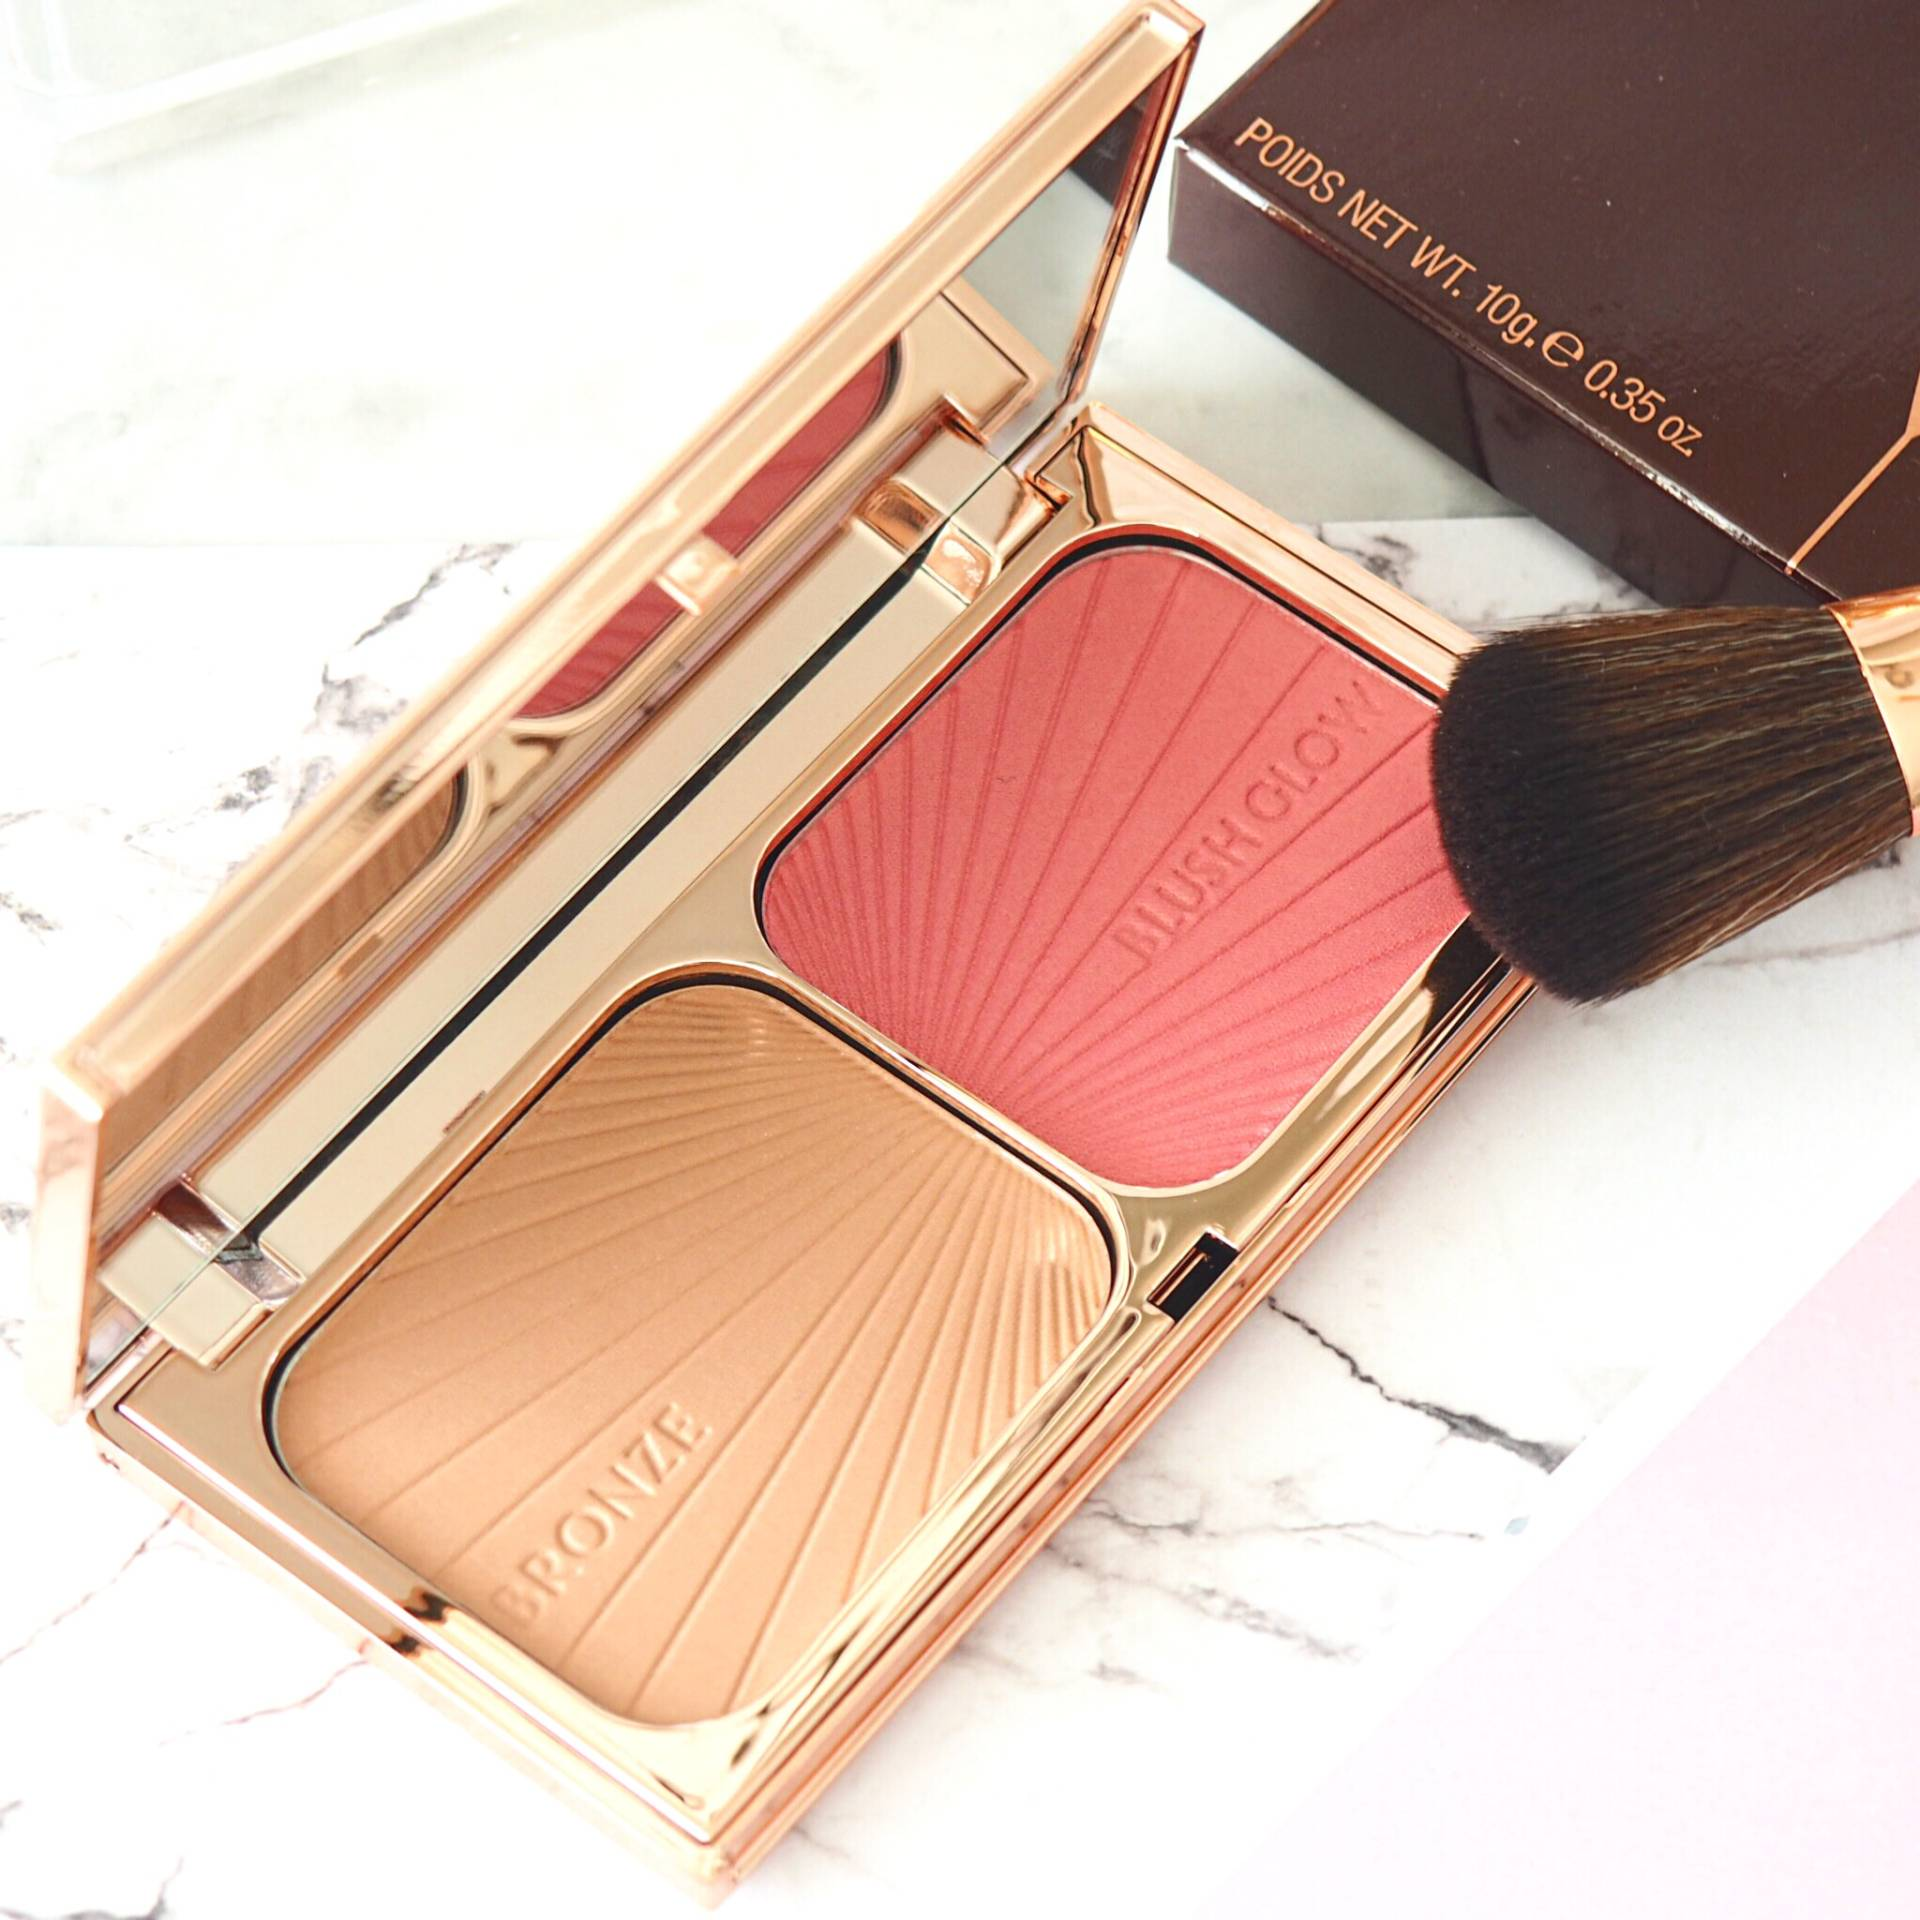 Charlotte Tilbury Bronzer and Blusher